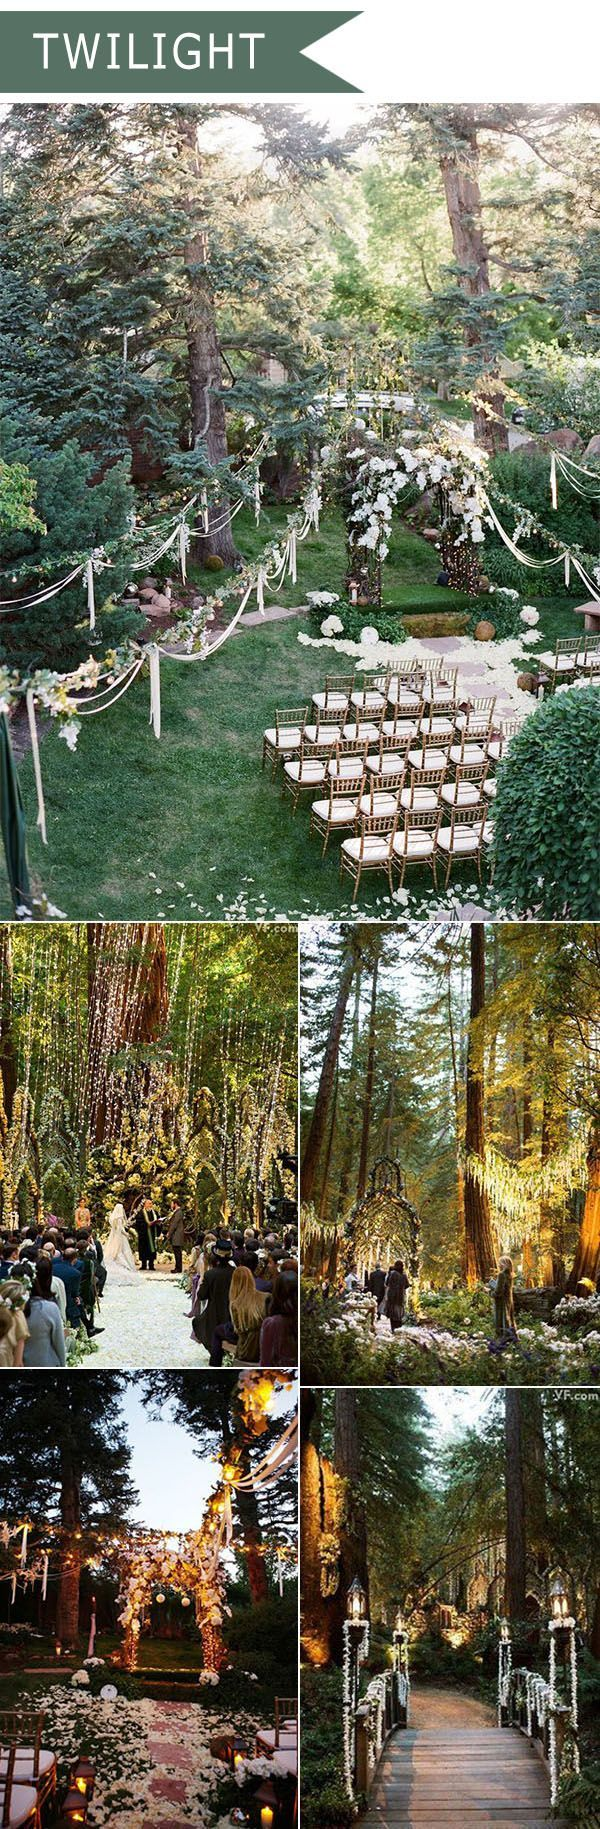 2016 Trending Twilight Forest Themed Wedding Ideas Wedding Themes